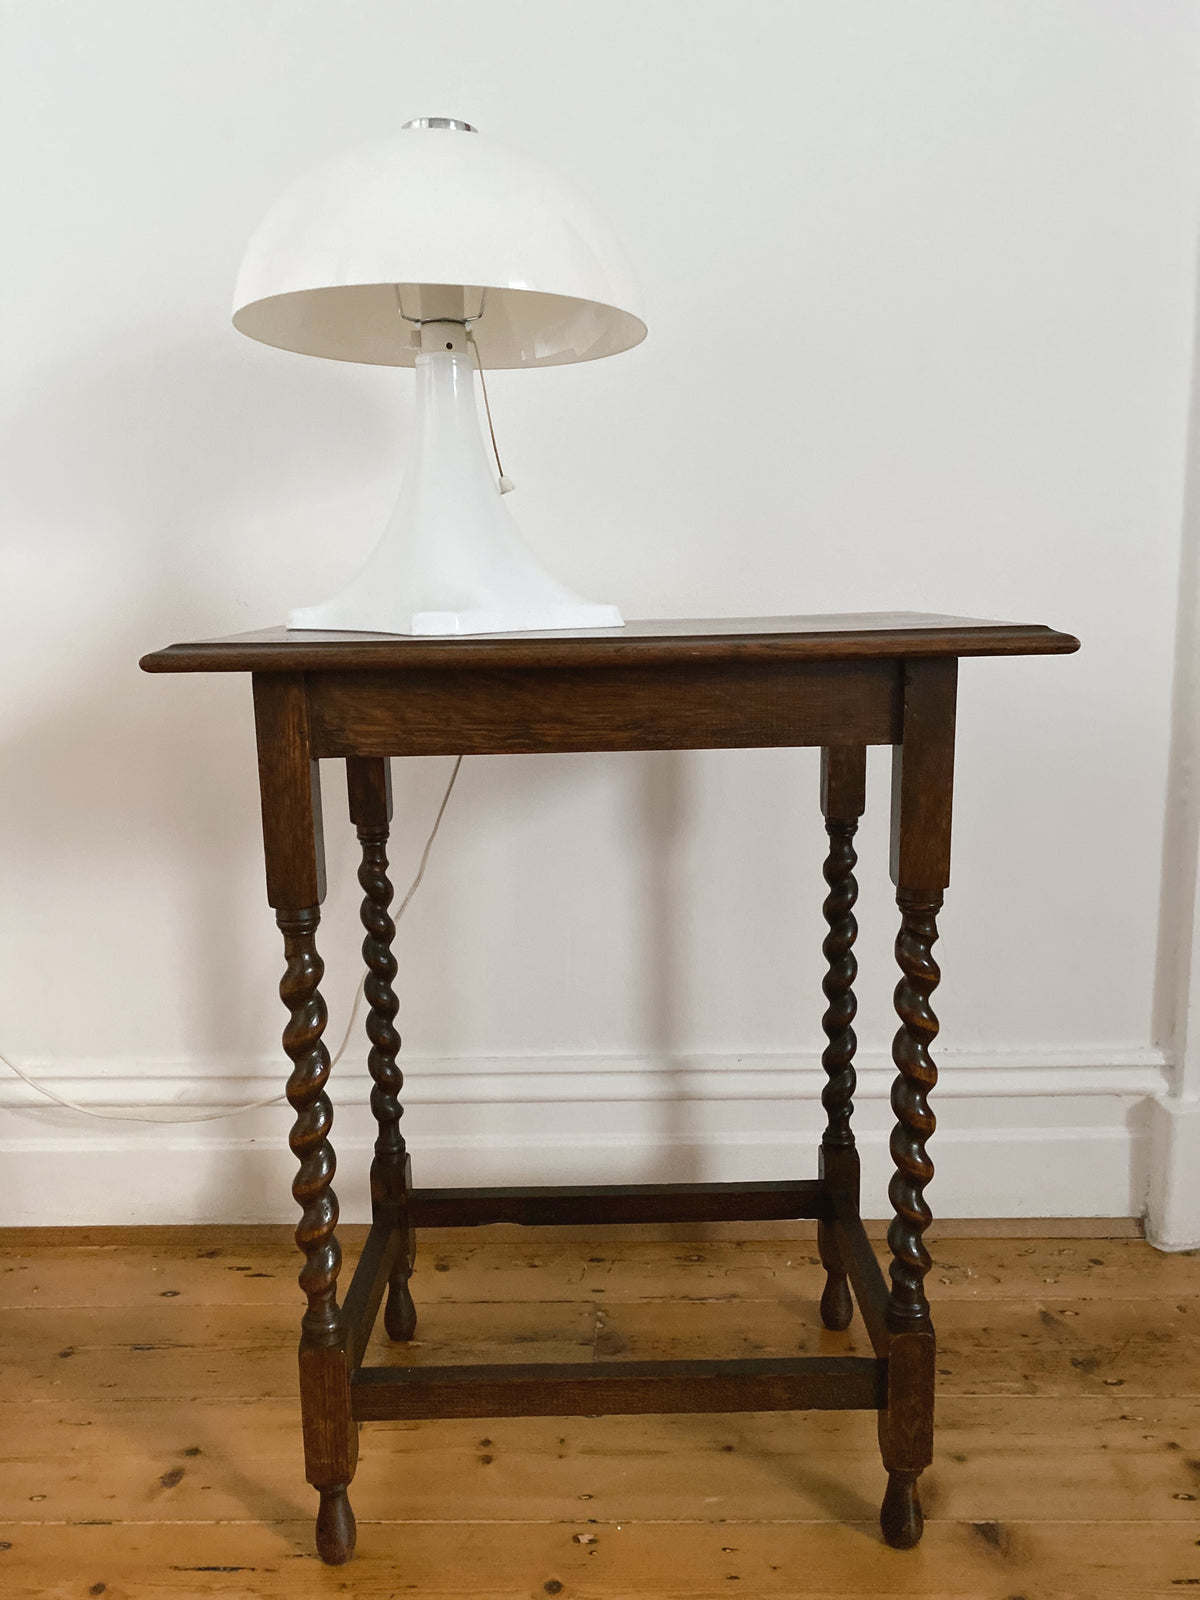 Antique Barley Twist Table